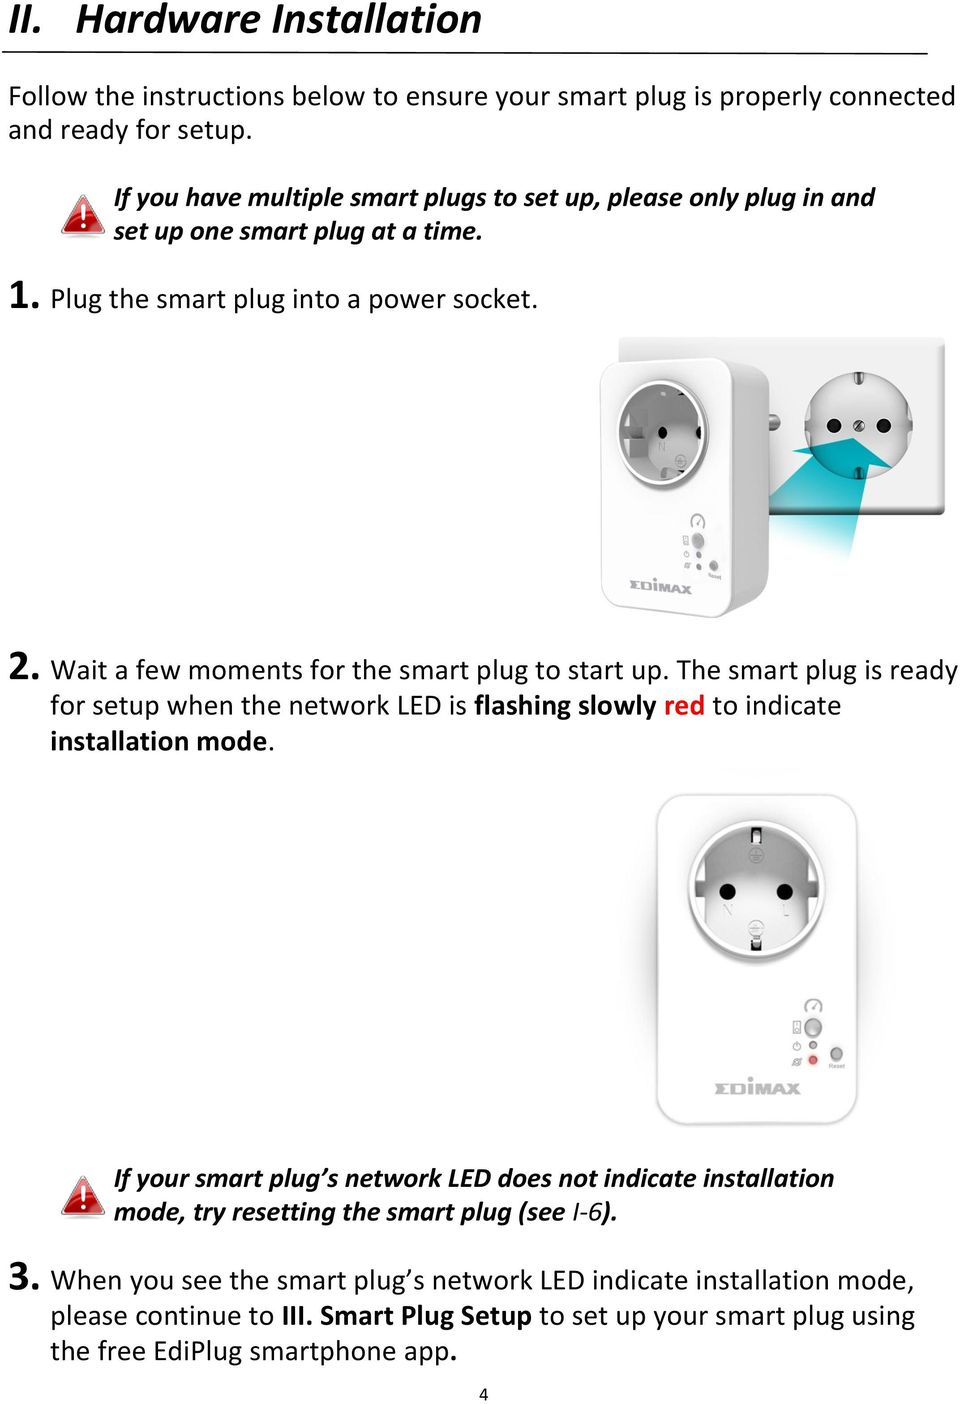 Wait a few moments for the smart plug to start up. The smart plug is ready for setup when the network LED is flashing slowly red to indicate installation mode.